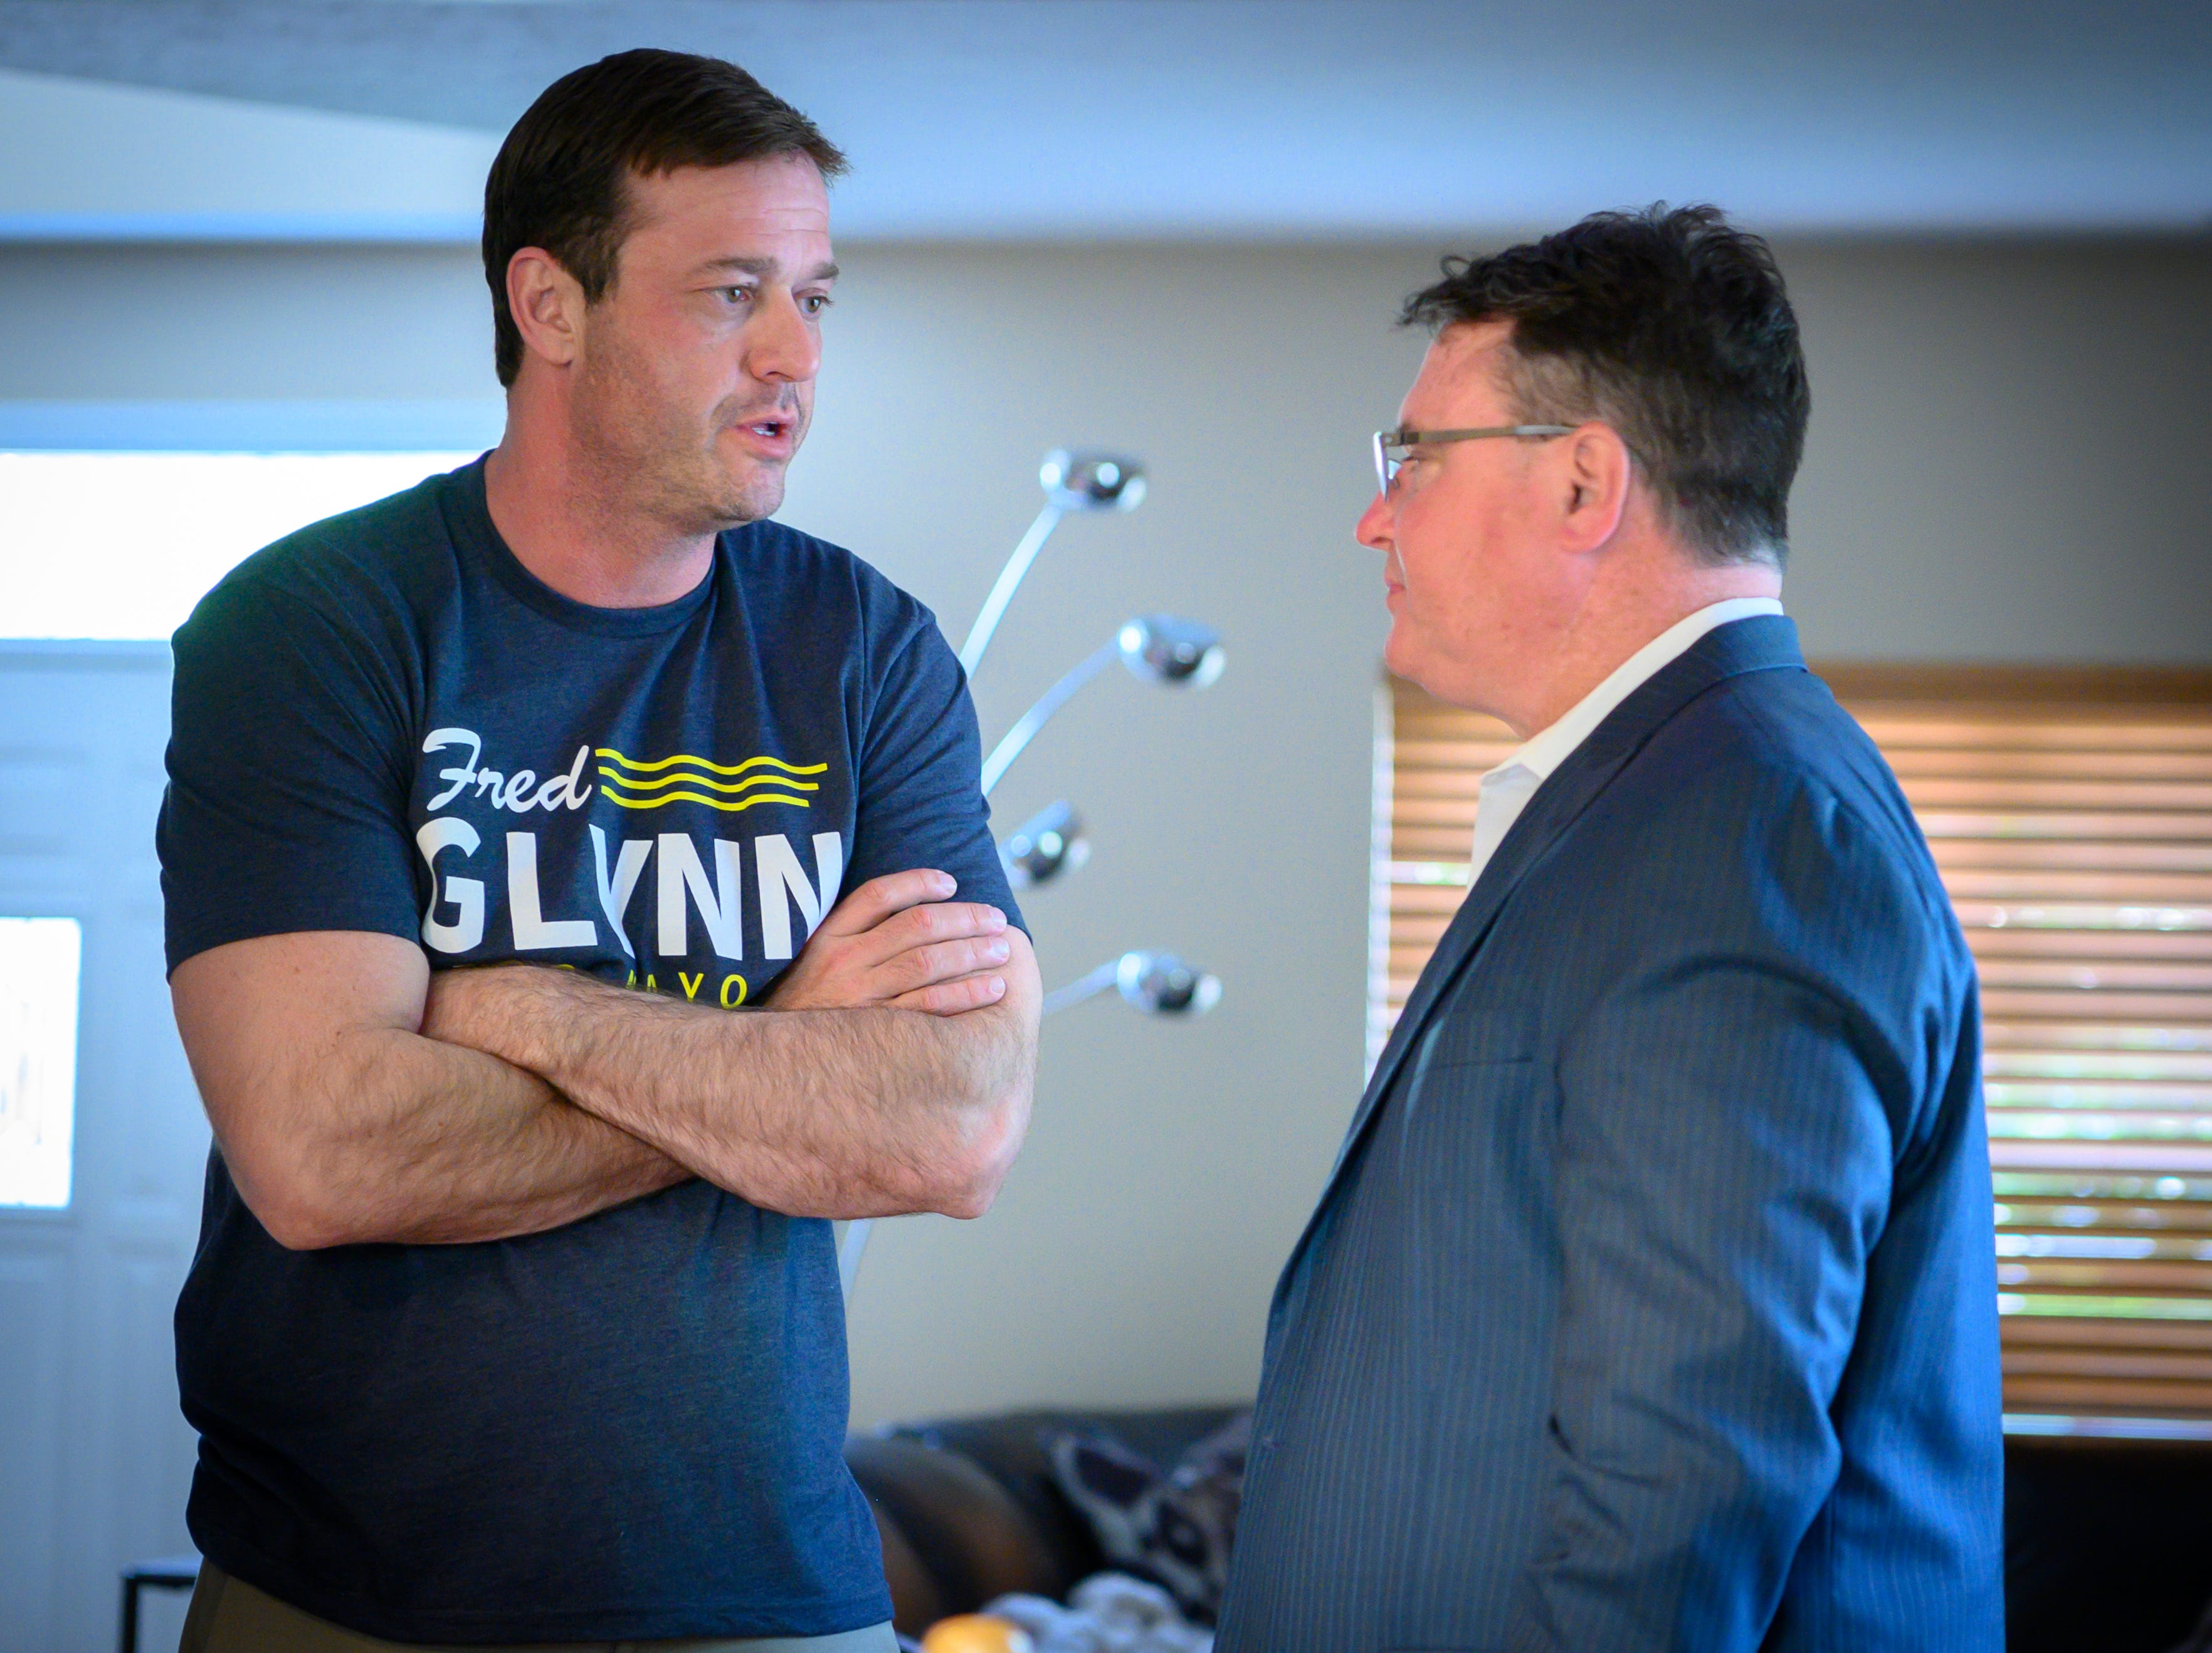 Fred Glynn talks with former congressman Todd Rokita as family, friends and supporters gathered at the home of the Carmel mayoral candidate while election results were publicized, Tuesday, May 7, 2019. Glynn campaigned for the office in hopes of unseating incumbent Jim Brainard who was seeking his seventh term in the office.